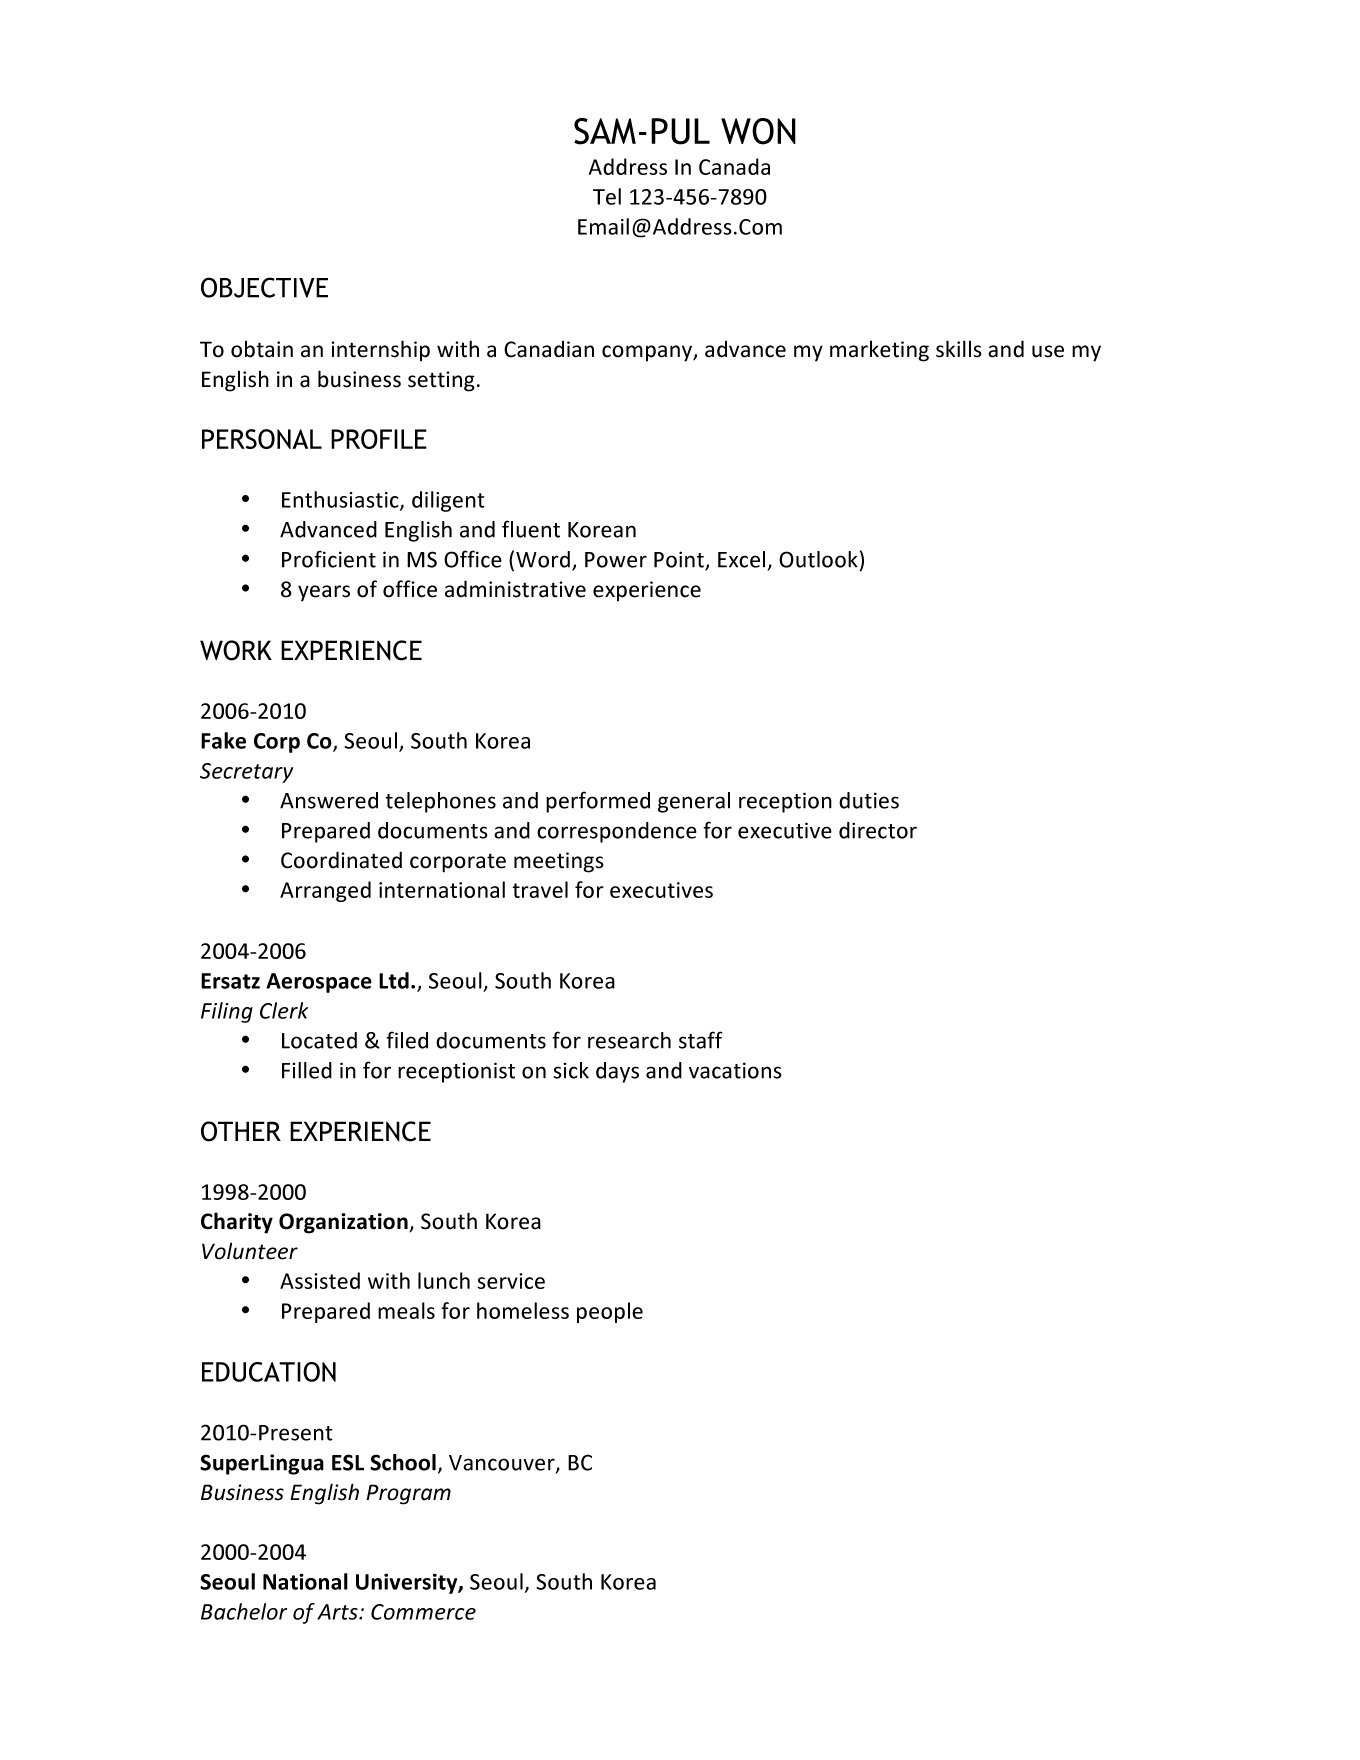 education resume study abroad resignation letter sample reason education resume study abroad